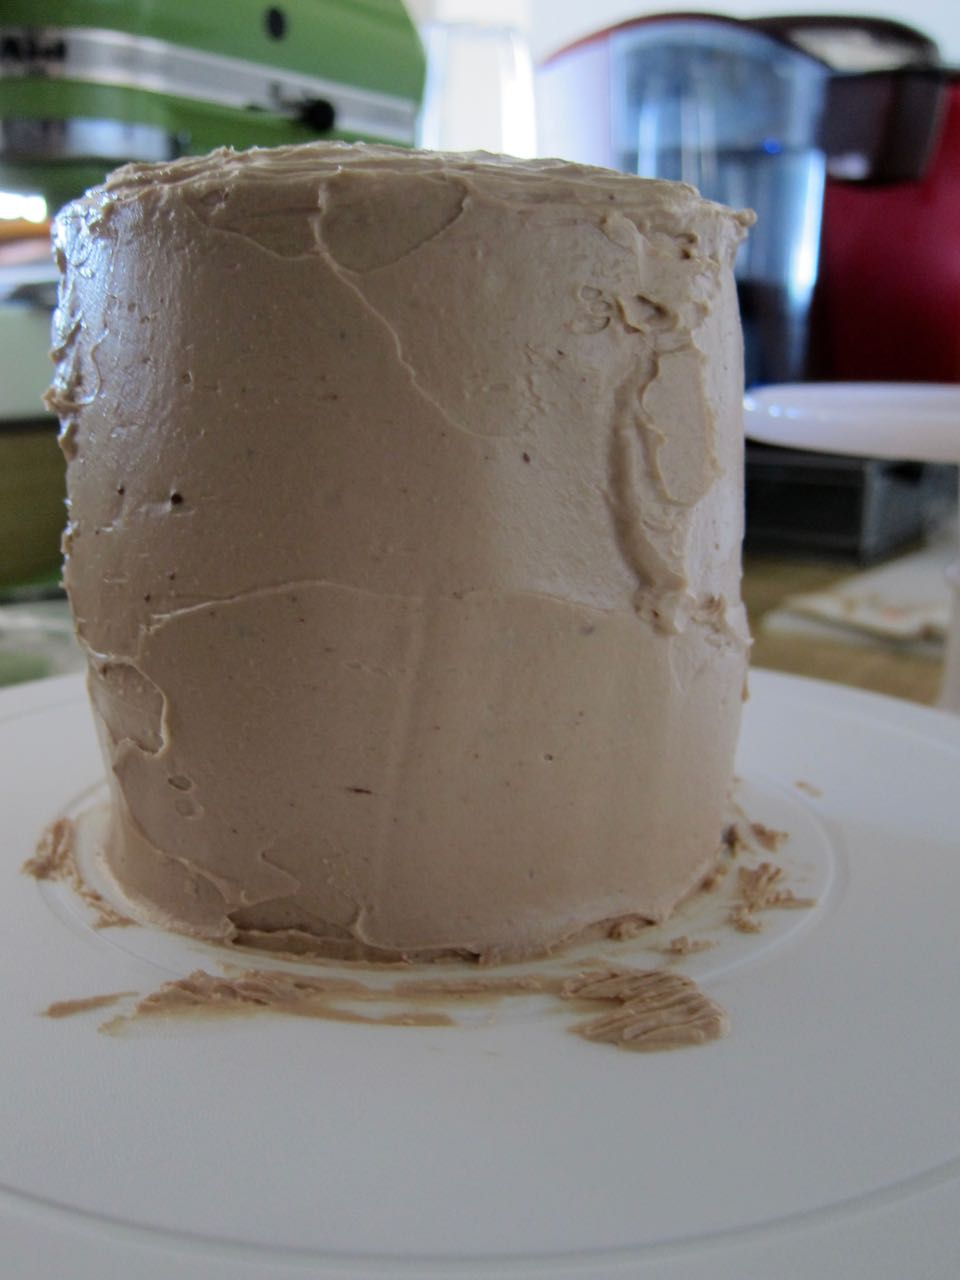 tahini chocolate frosted cake.jpg